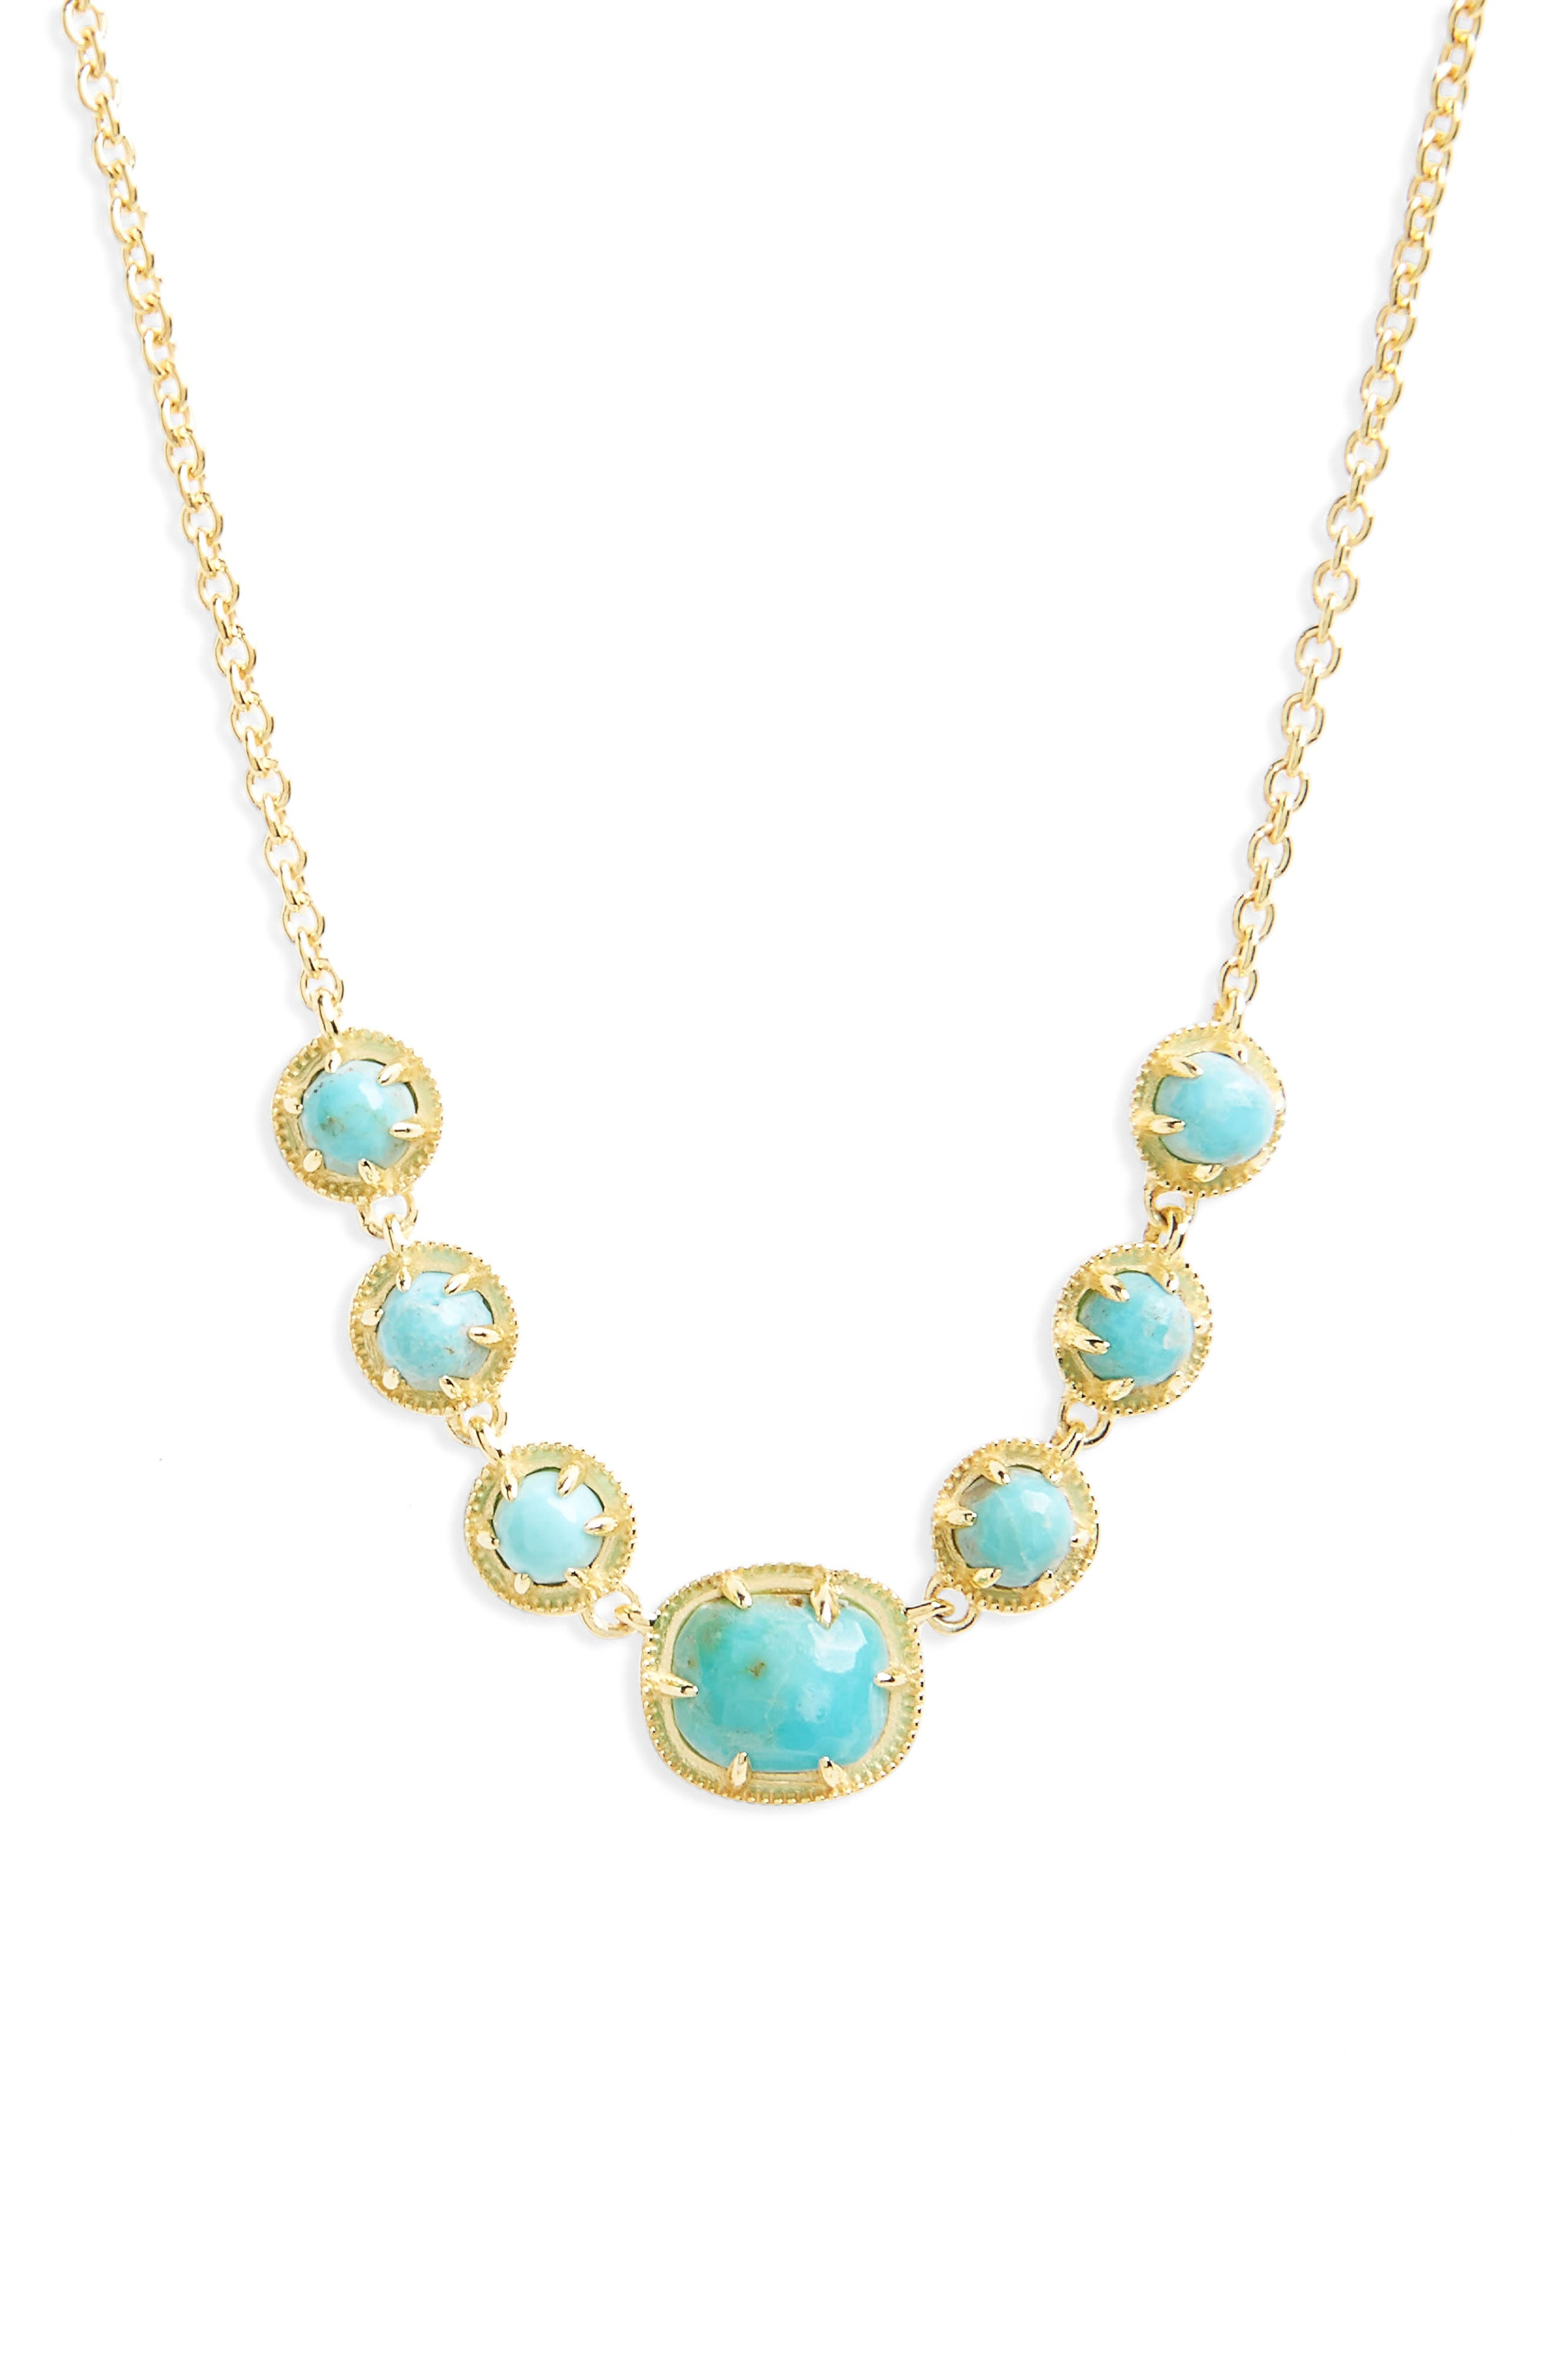 Semiprecious Stone Collar Necklace,                         Main,                         color, Turquoise/ Gold